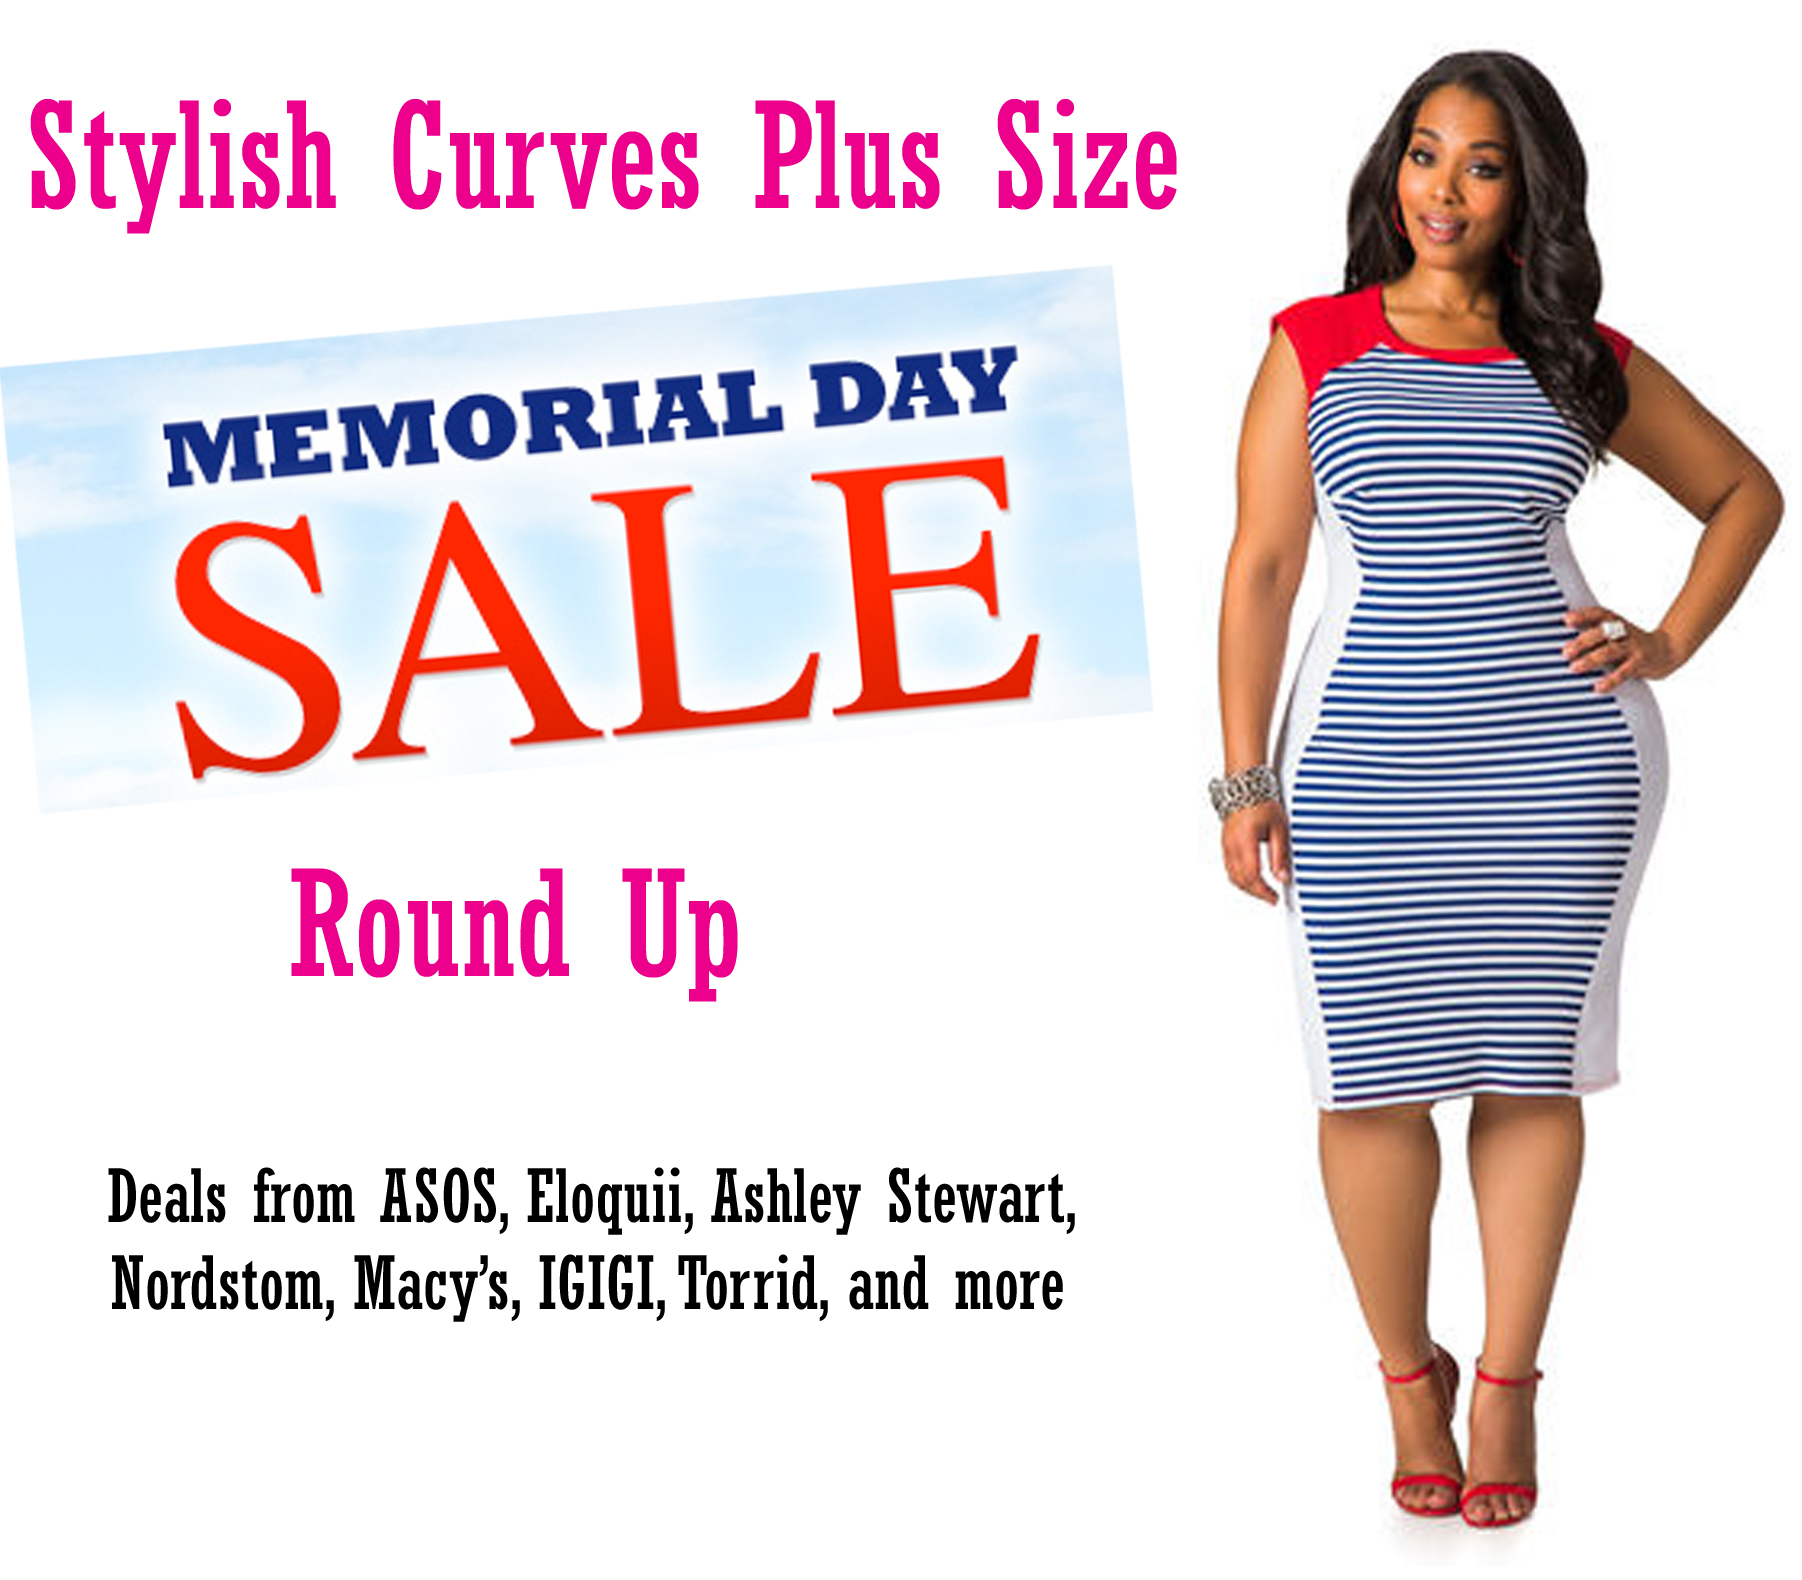 Stylish Curves Plus Size Memorial Day Weekend Sale Roundup